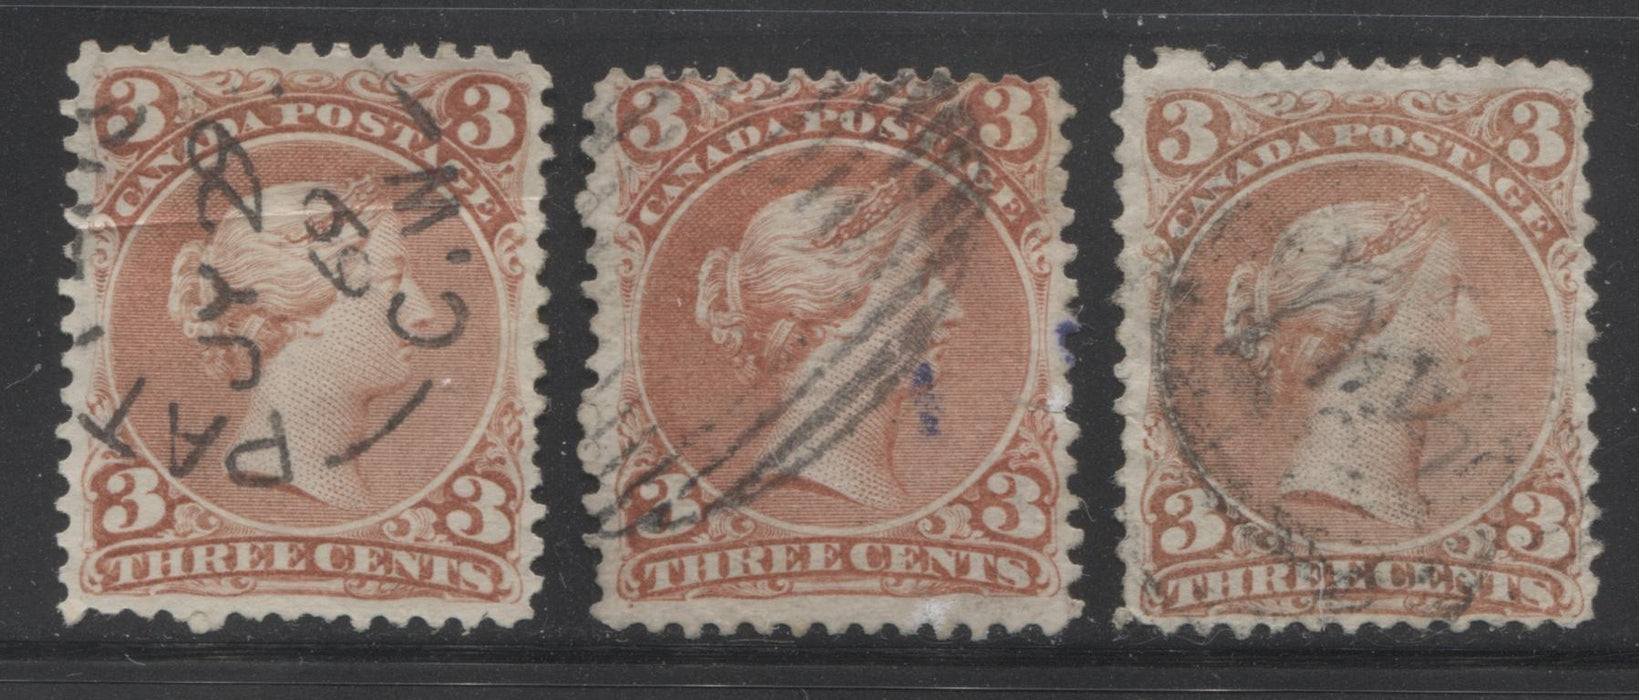 Canada #25 3c Dull Red, Red and Venetian Red Queen Victoria, 1868-1897 Large Queen Issue, Good and Very Good Used Singles on Duckworth Papers 9 and 10 Brixton Chrome